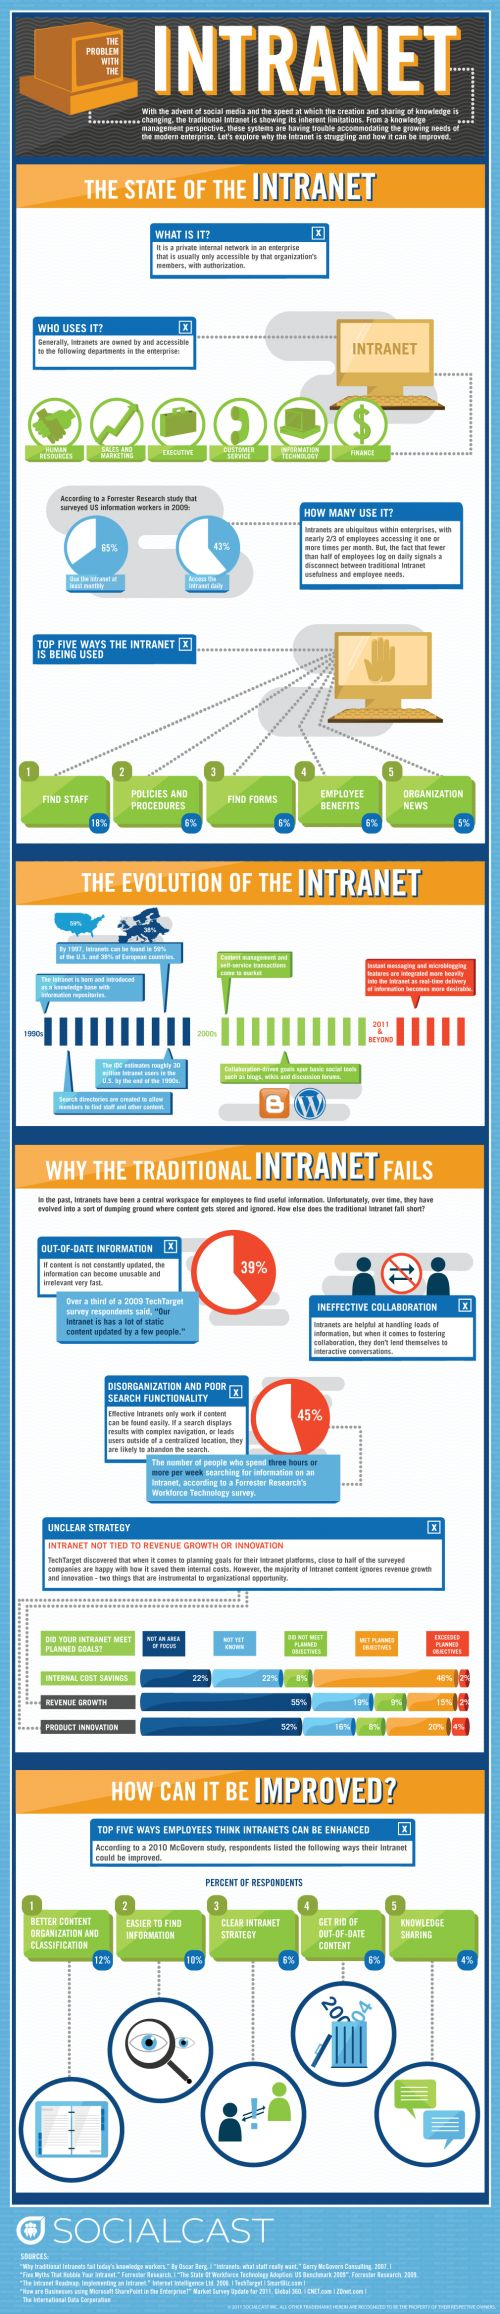 Current intranets fail because of out-of-date info, ineffective collaboration, poorly organised and an unclear strategy and business value.